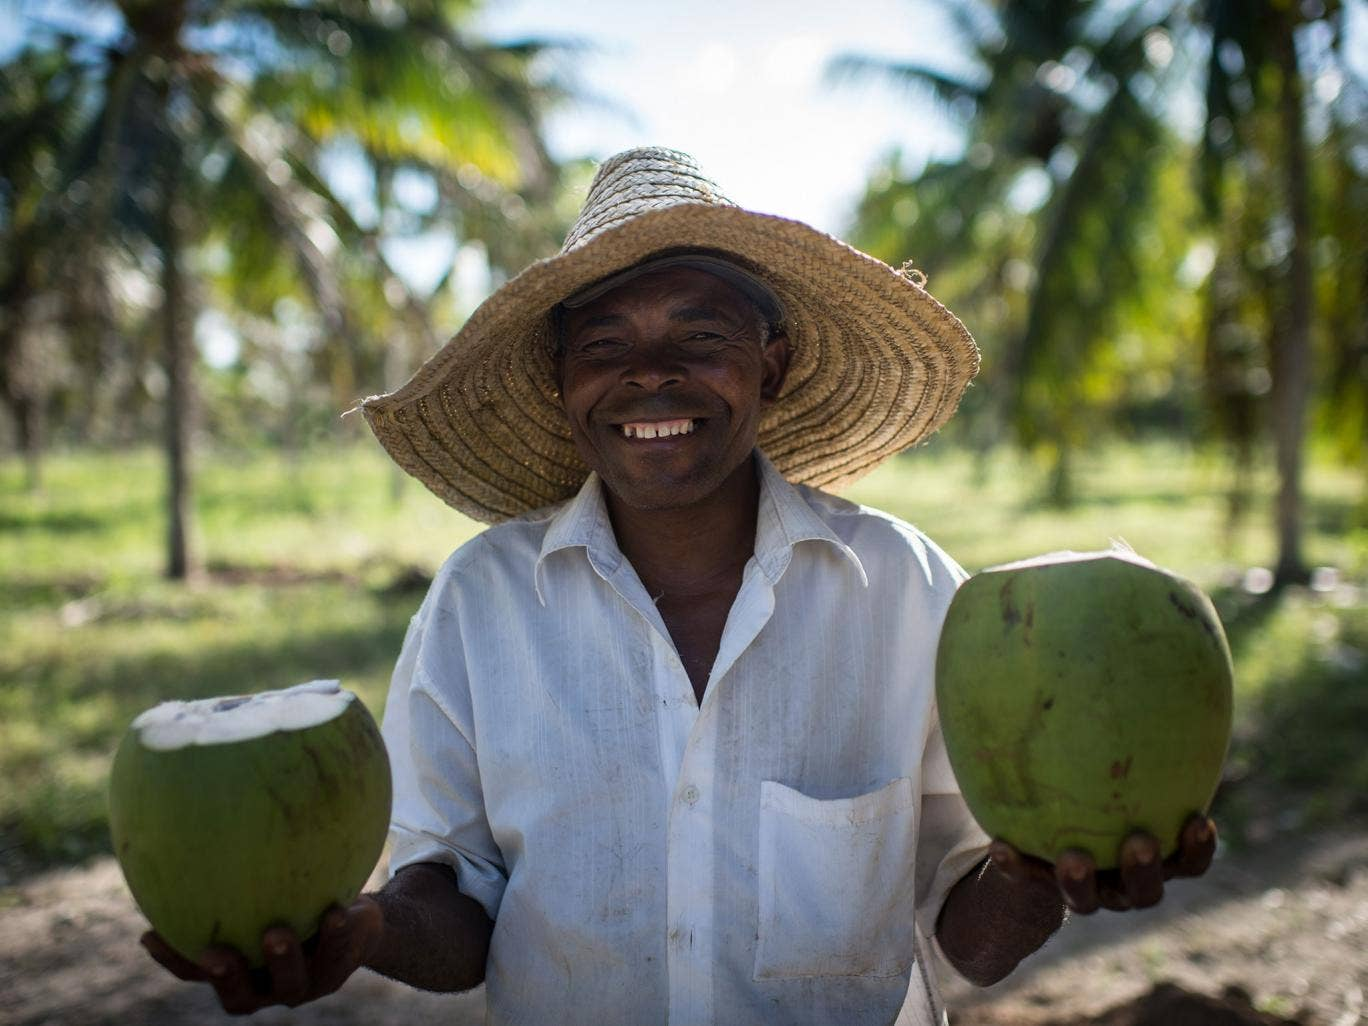 Tropical taste: a coconut farmer in Brazil shows off his wares